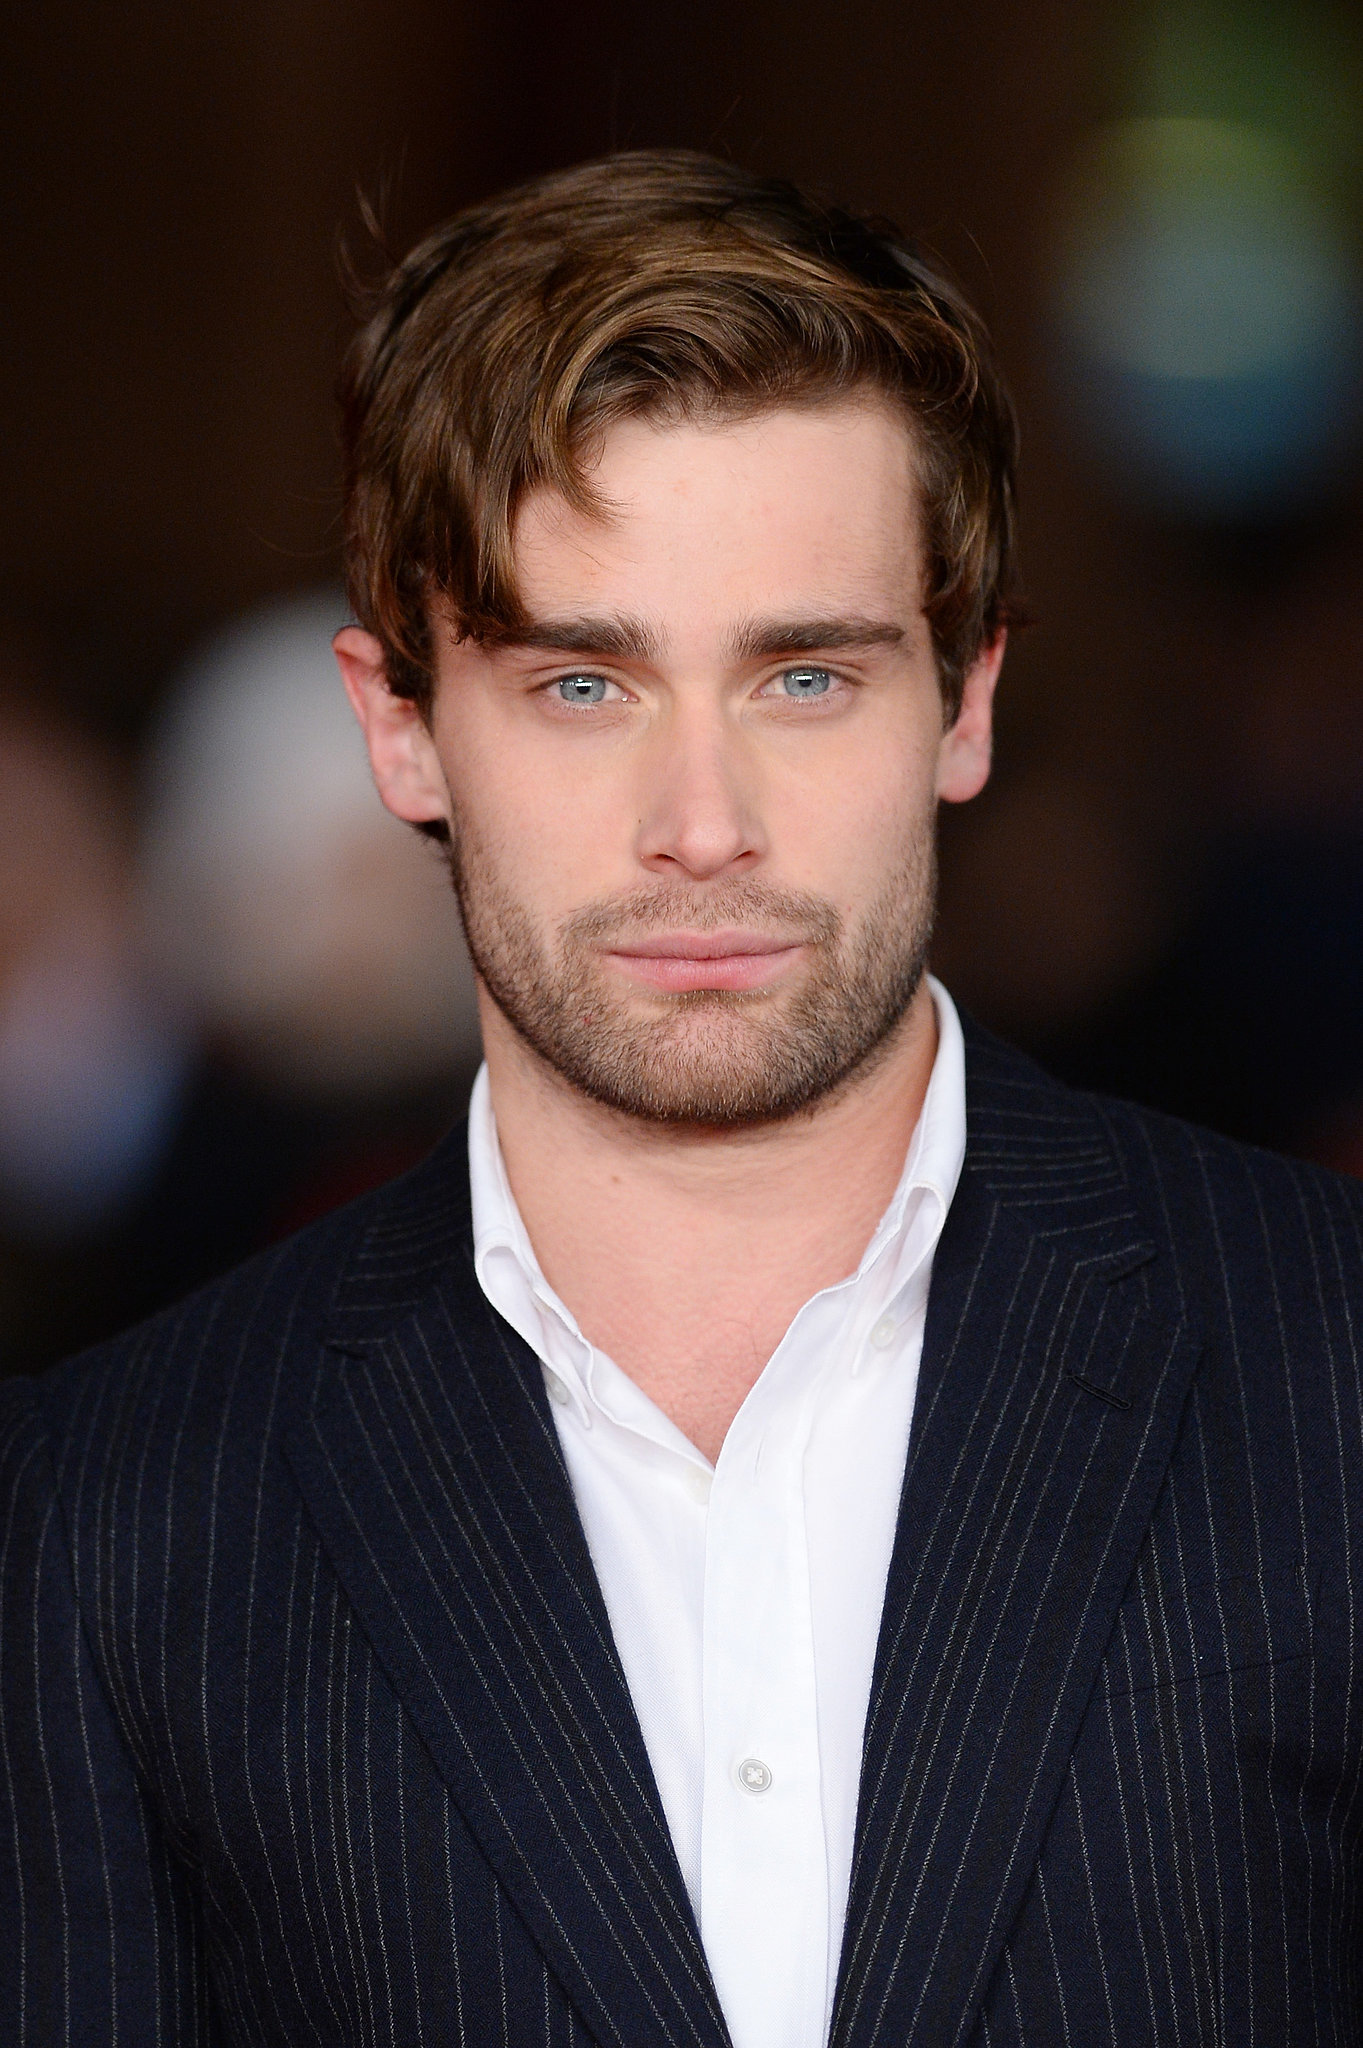 The 30-year old son of father (?) and mother(?), 177 cm tall Christian Cooke in 2017 photo